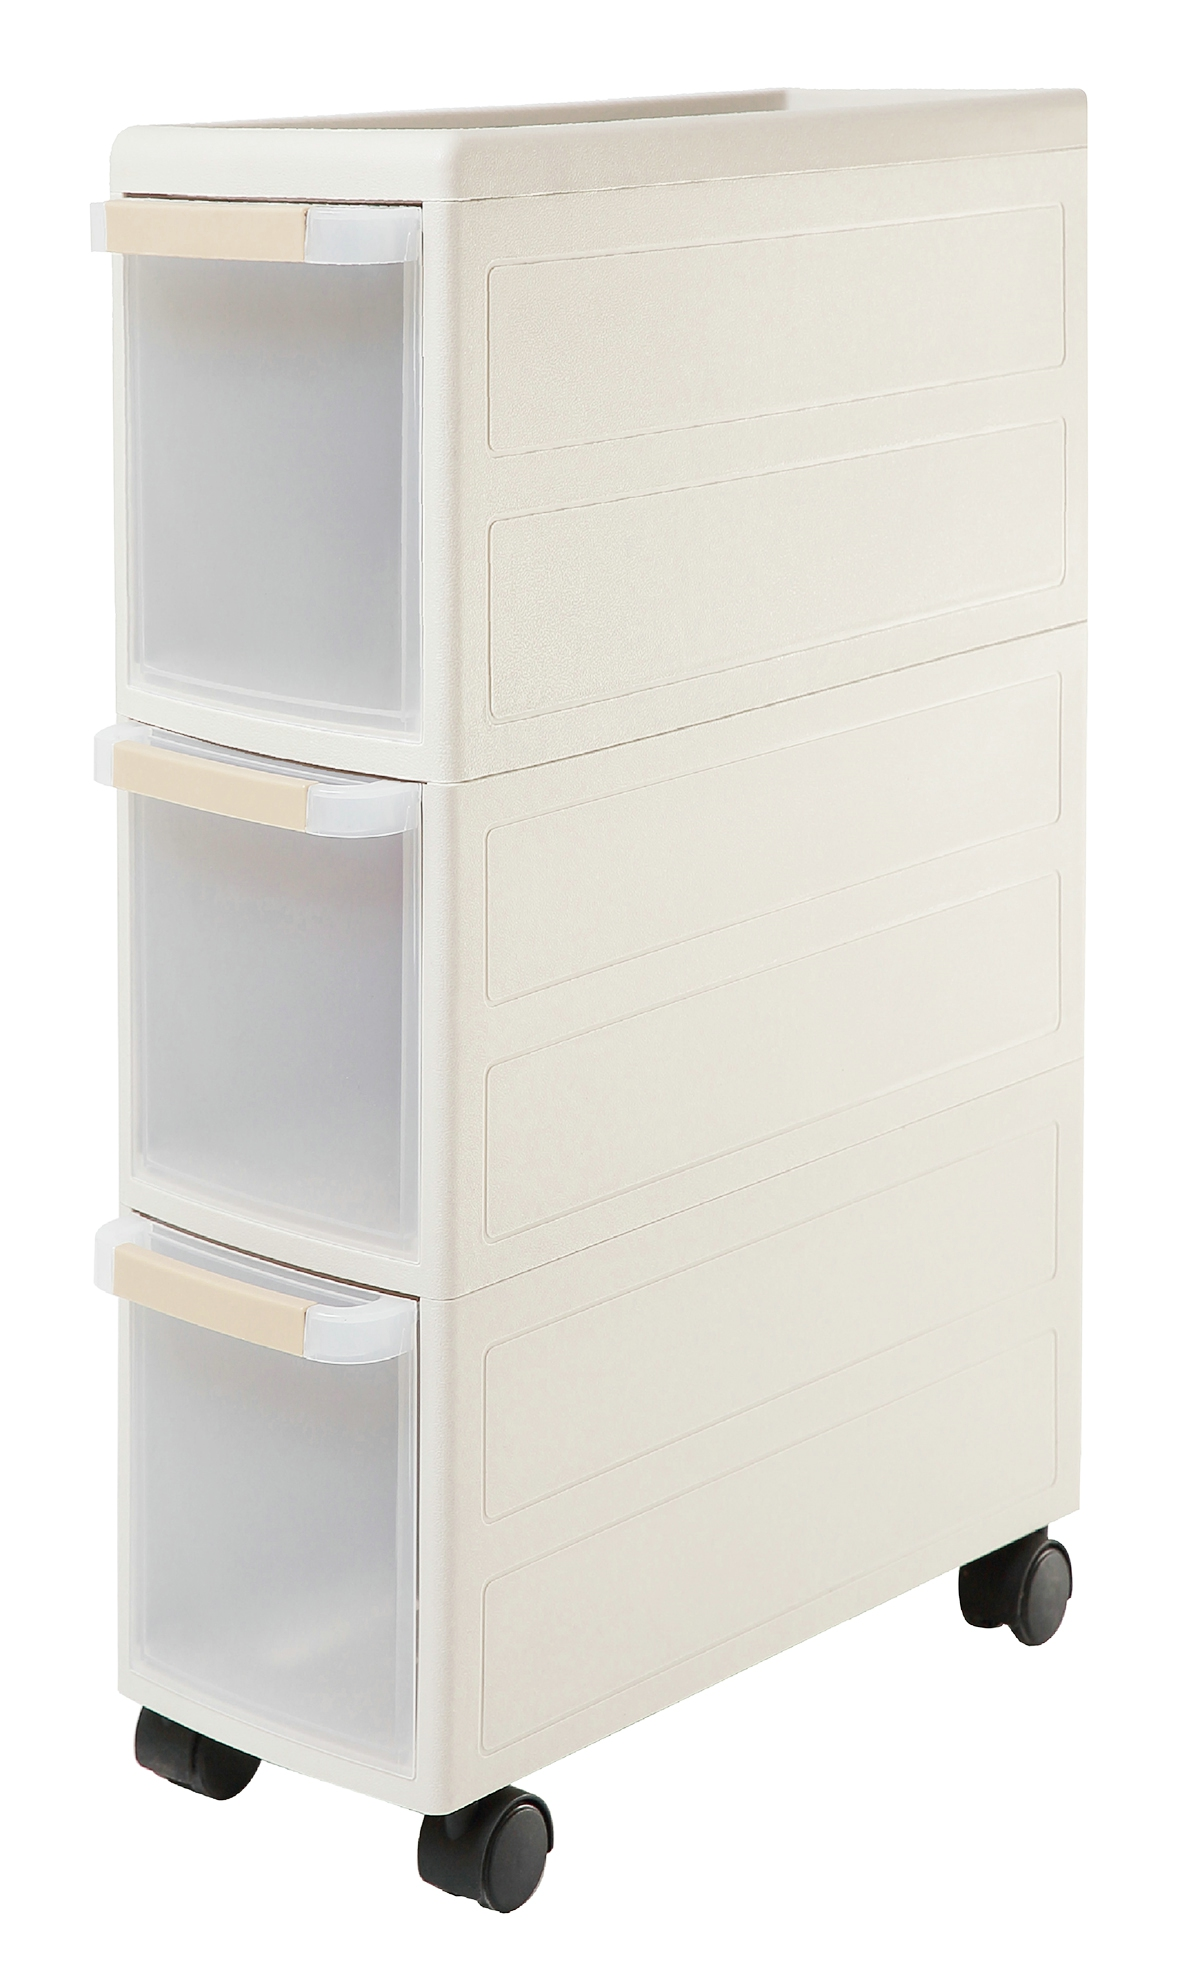 Orolay Plastic Storage Trolley Drawers On Wheels Cabinet